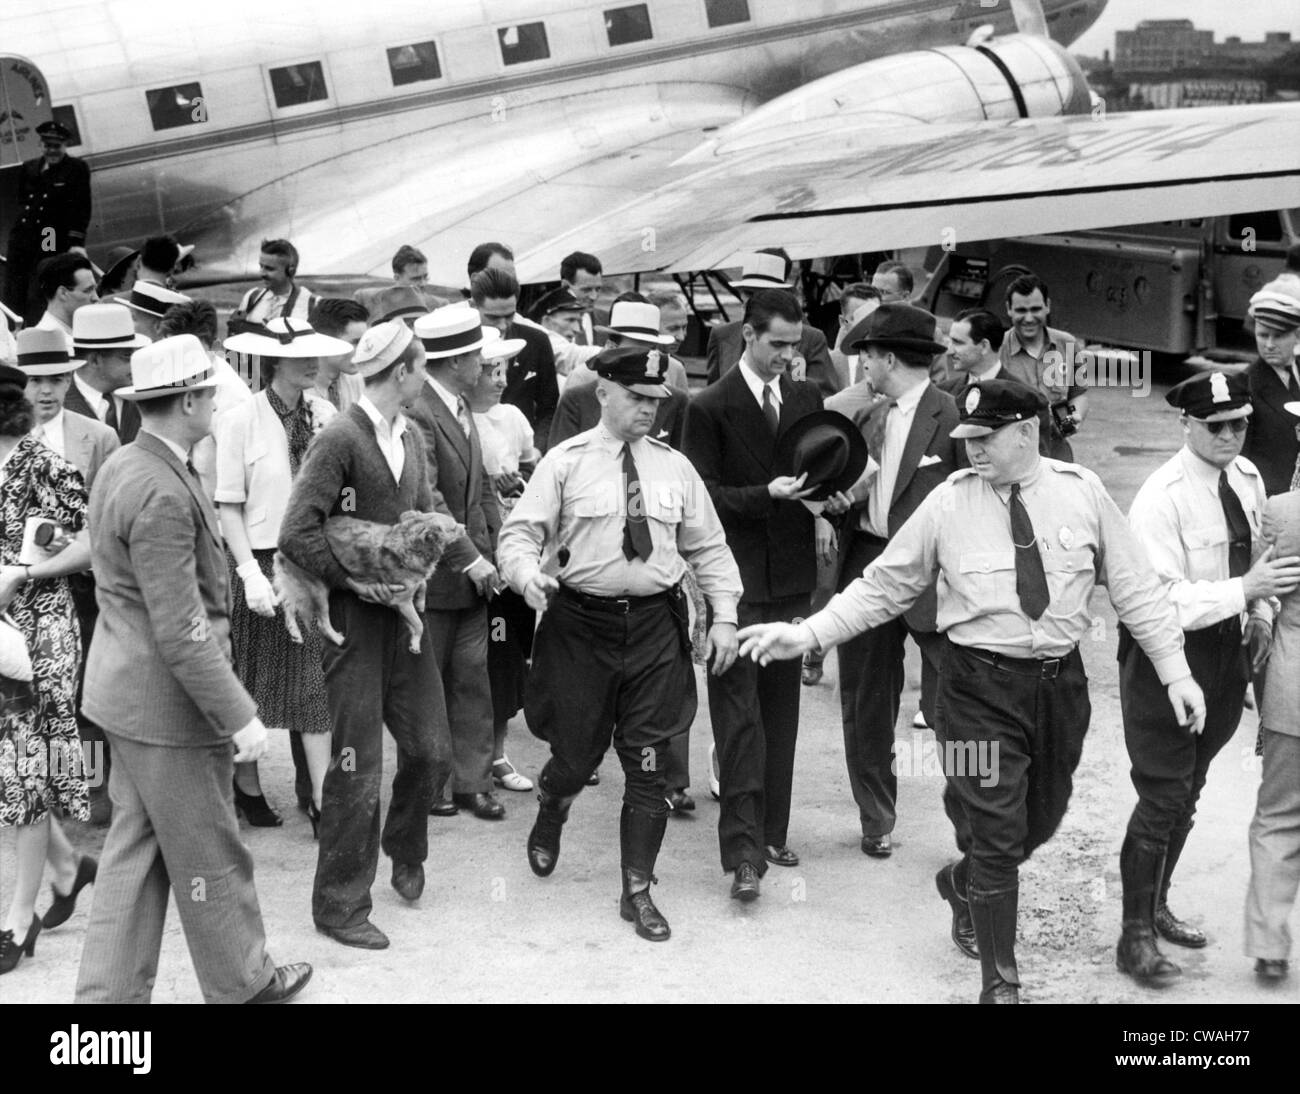 Howard Hughes leaves his plane in Washington, DC after his round the world flight, 7/21/38. Courtesy: CSU Archives - Stock Image